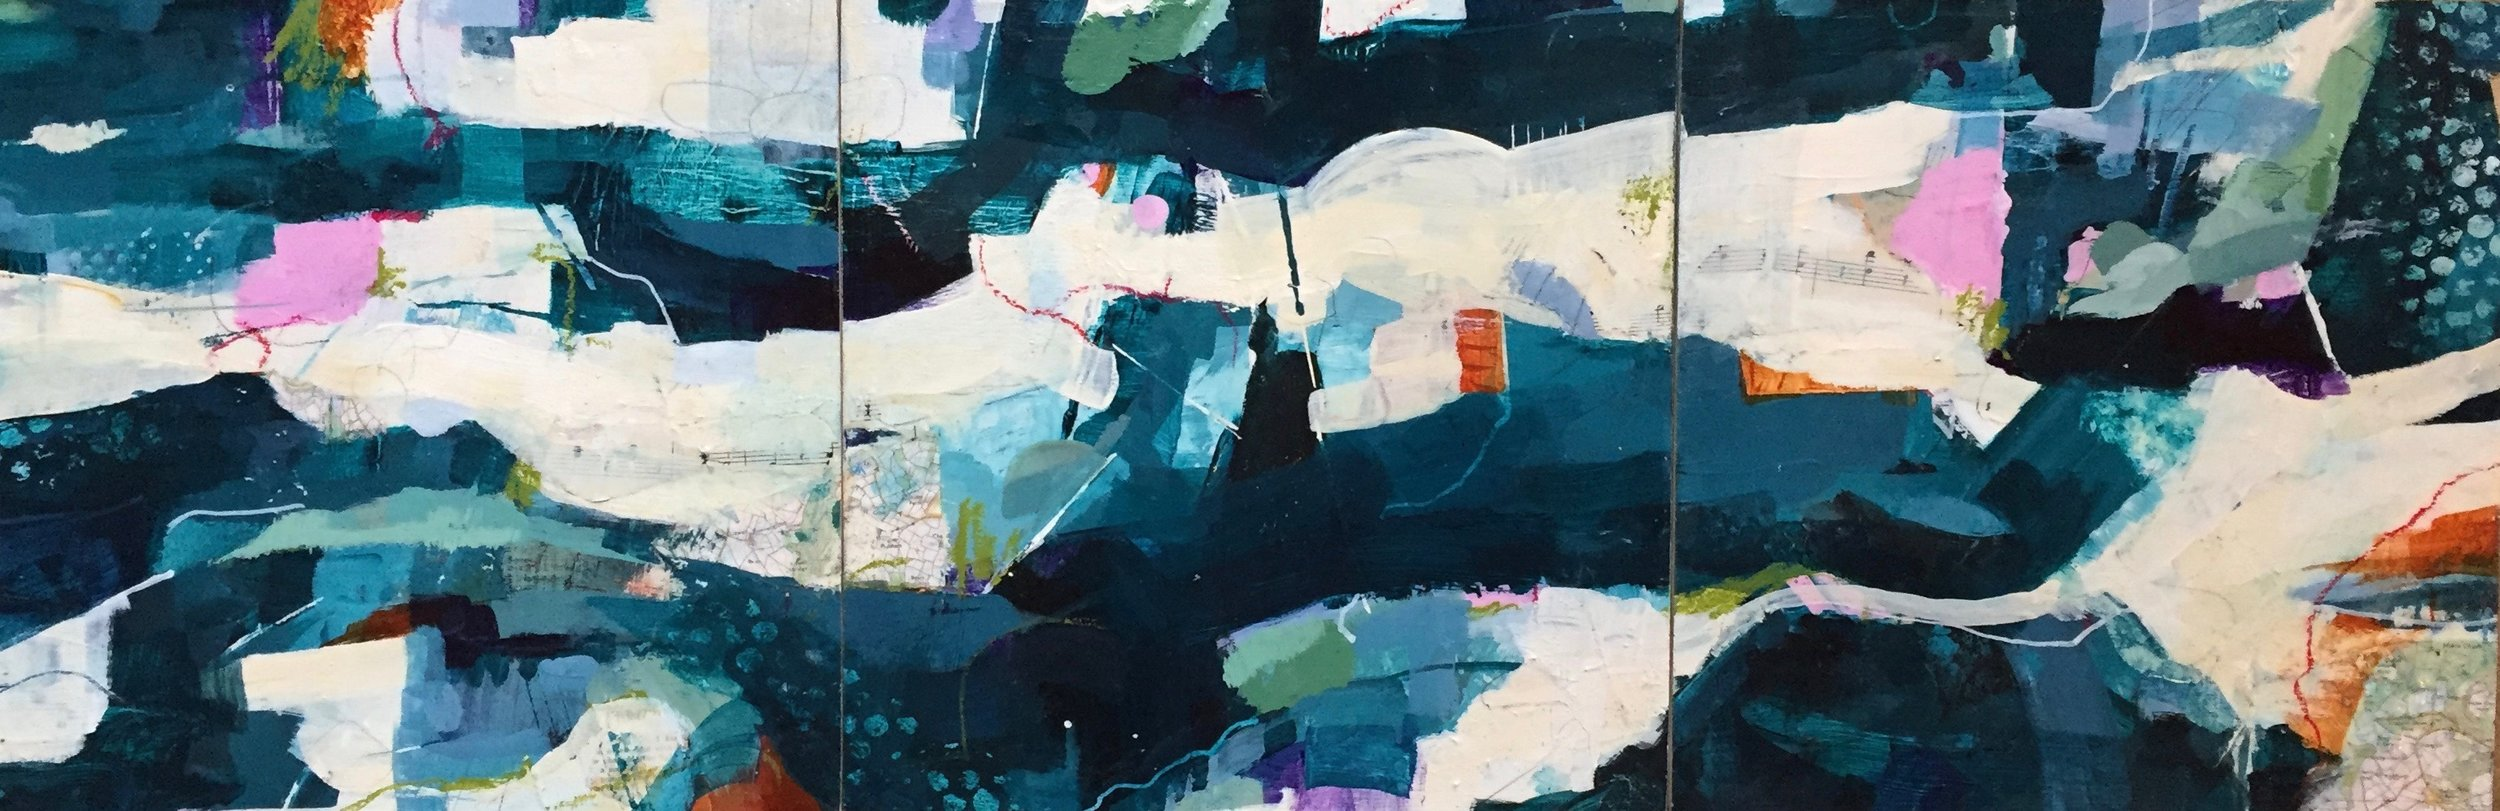 Mixed Media Prize Winner (£200 Jackson's Art Gift Voucher): 'A River Runs Through' by Louise Fletcher.  Read more about the artwork.